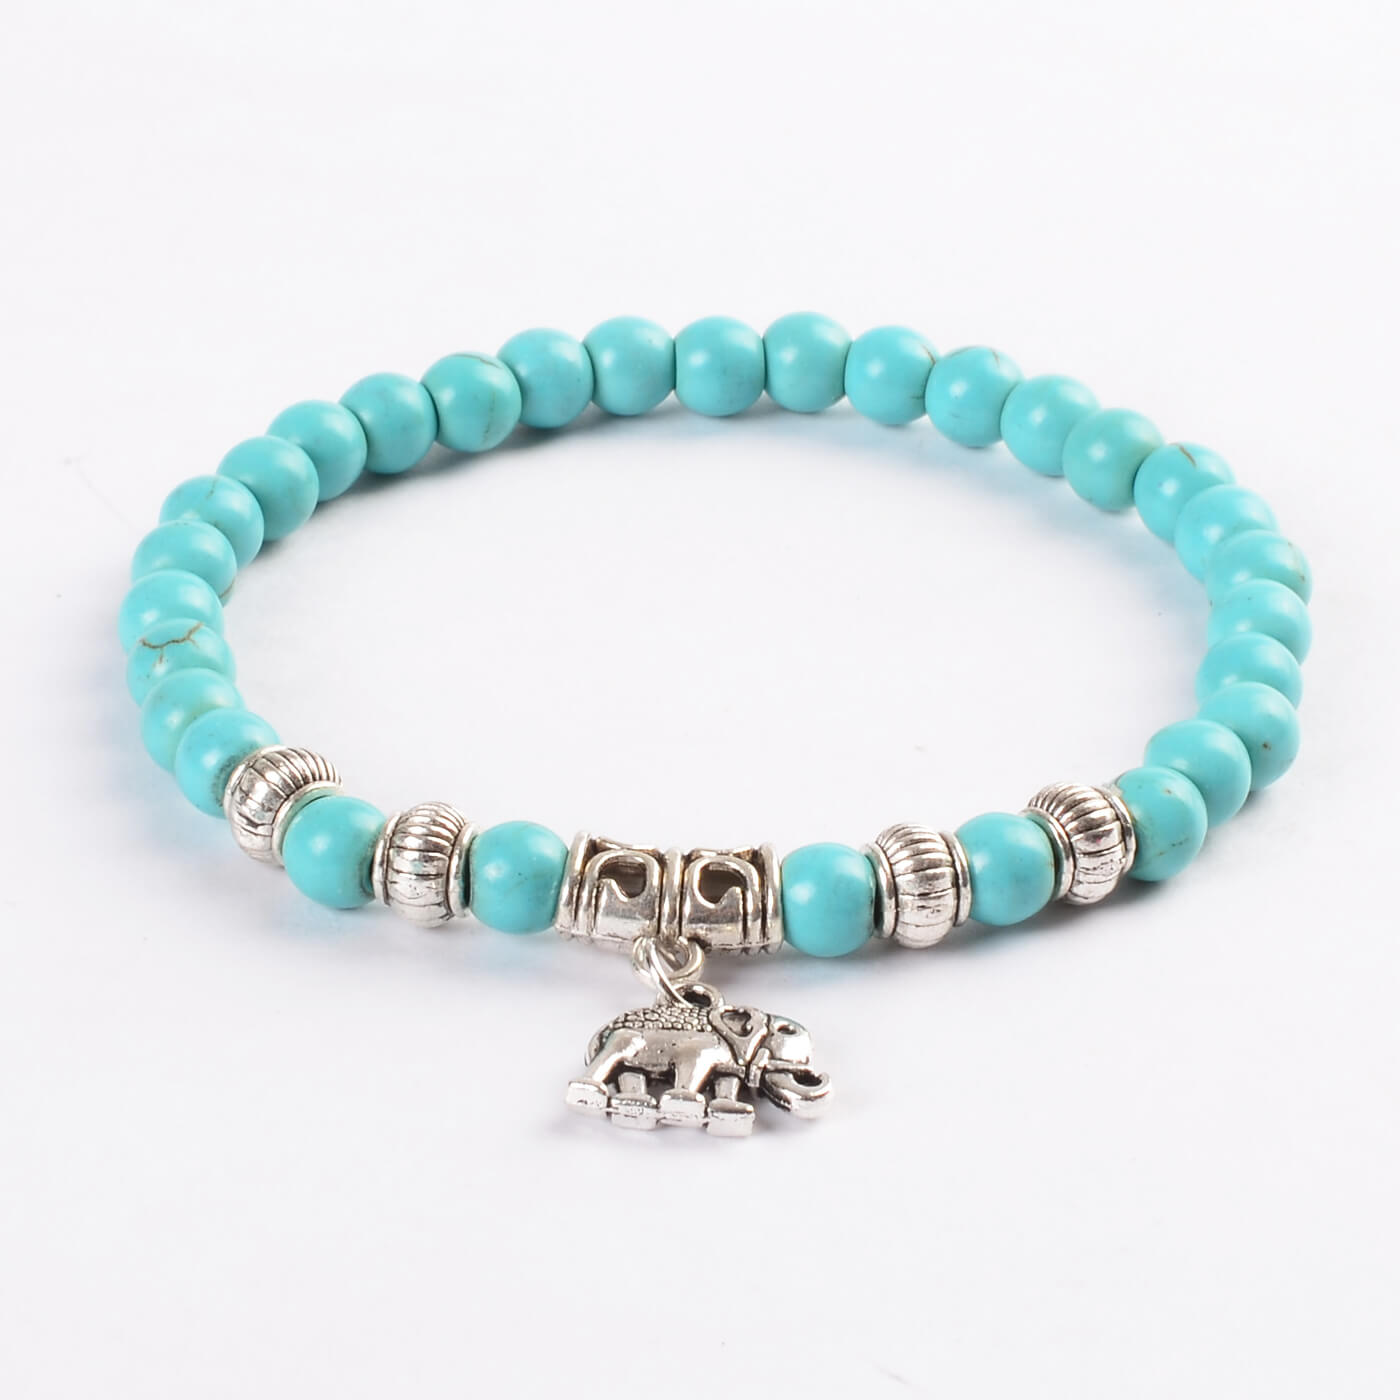 d59f03fa0 Silver Elephant Honesty & Protection Bracelet | Blue Turquoise Stone Beads